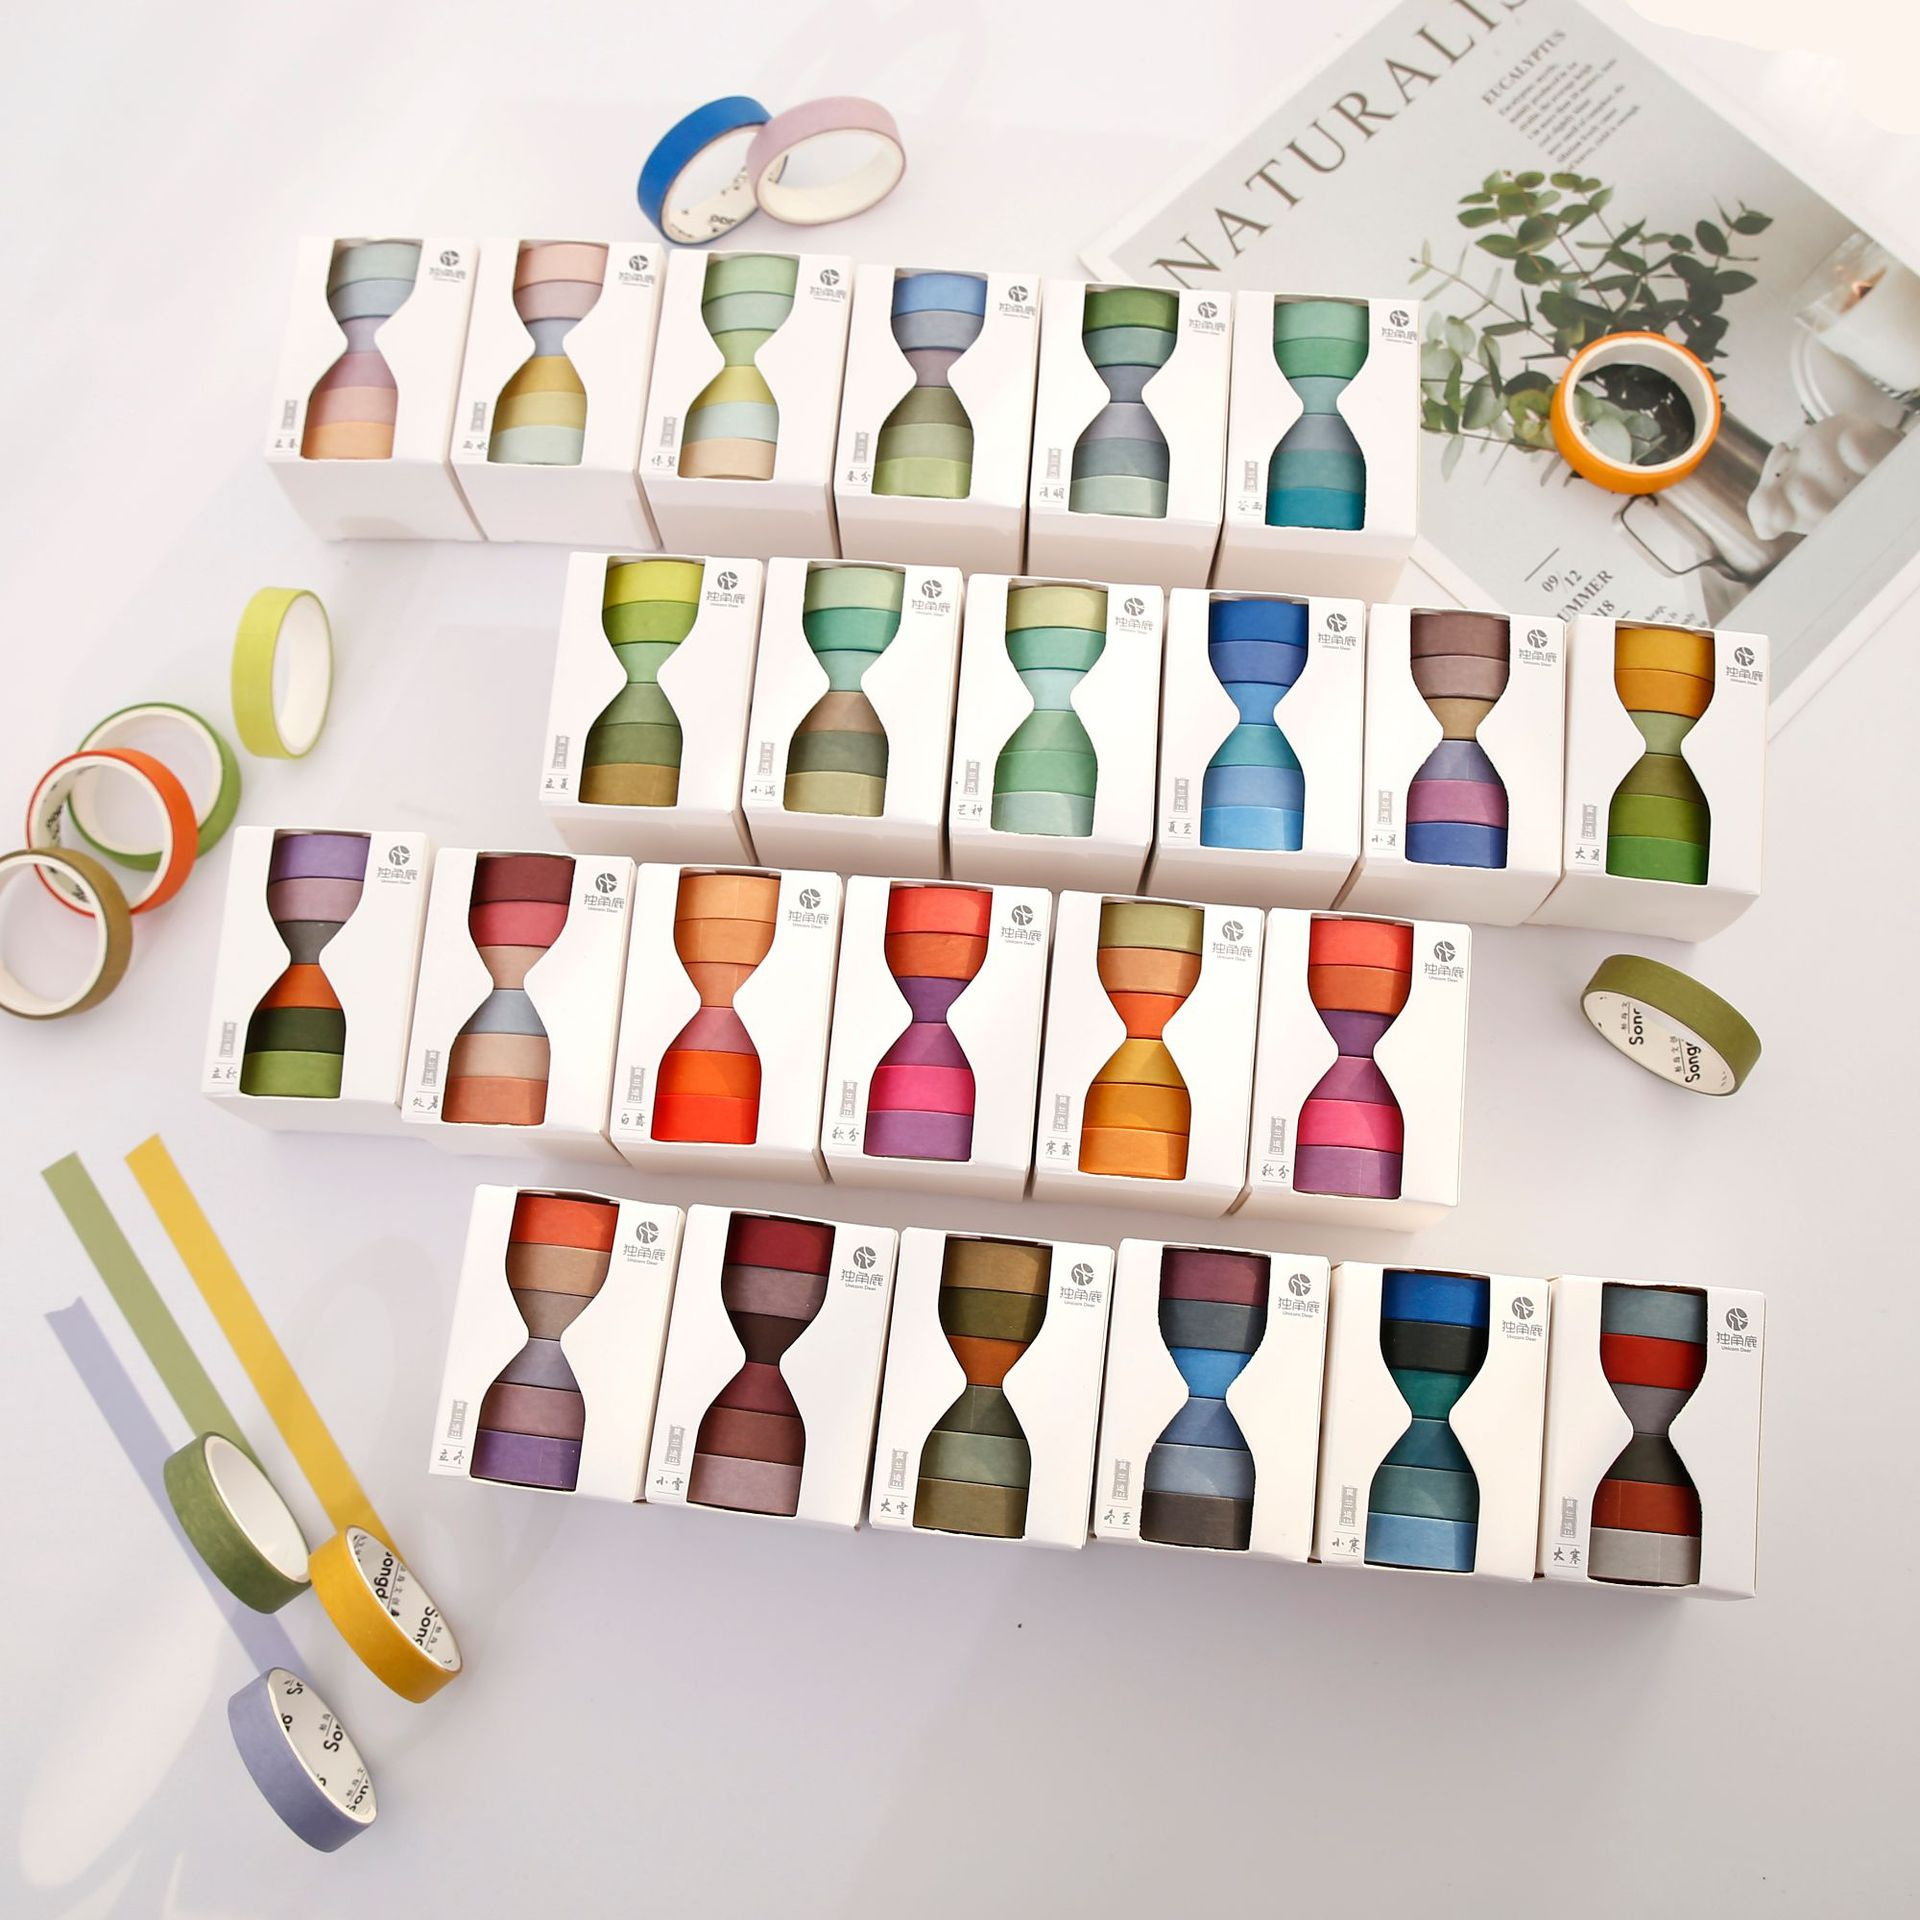 6 pcs/pack Solar Terms Pure Color Journal Washi Tape Set DIY Scrapbooking Sticker Label Masking Tape School Office Supply